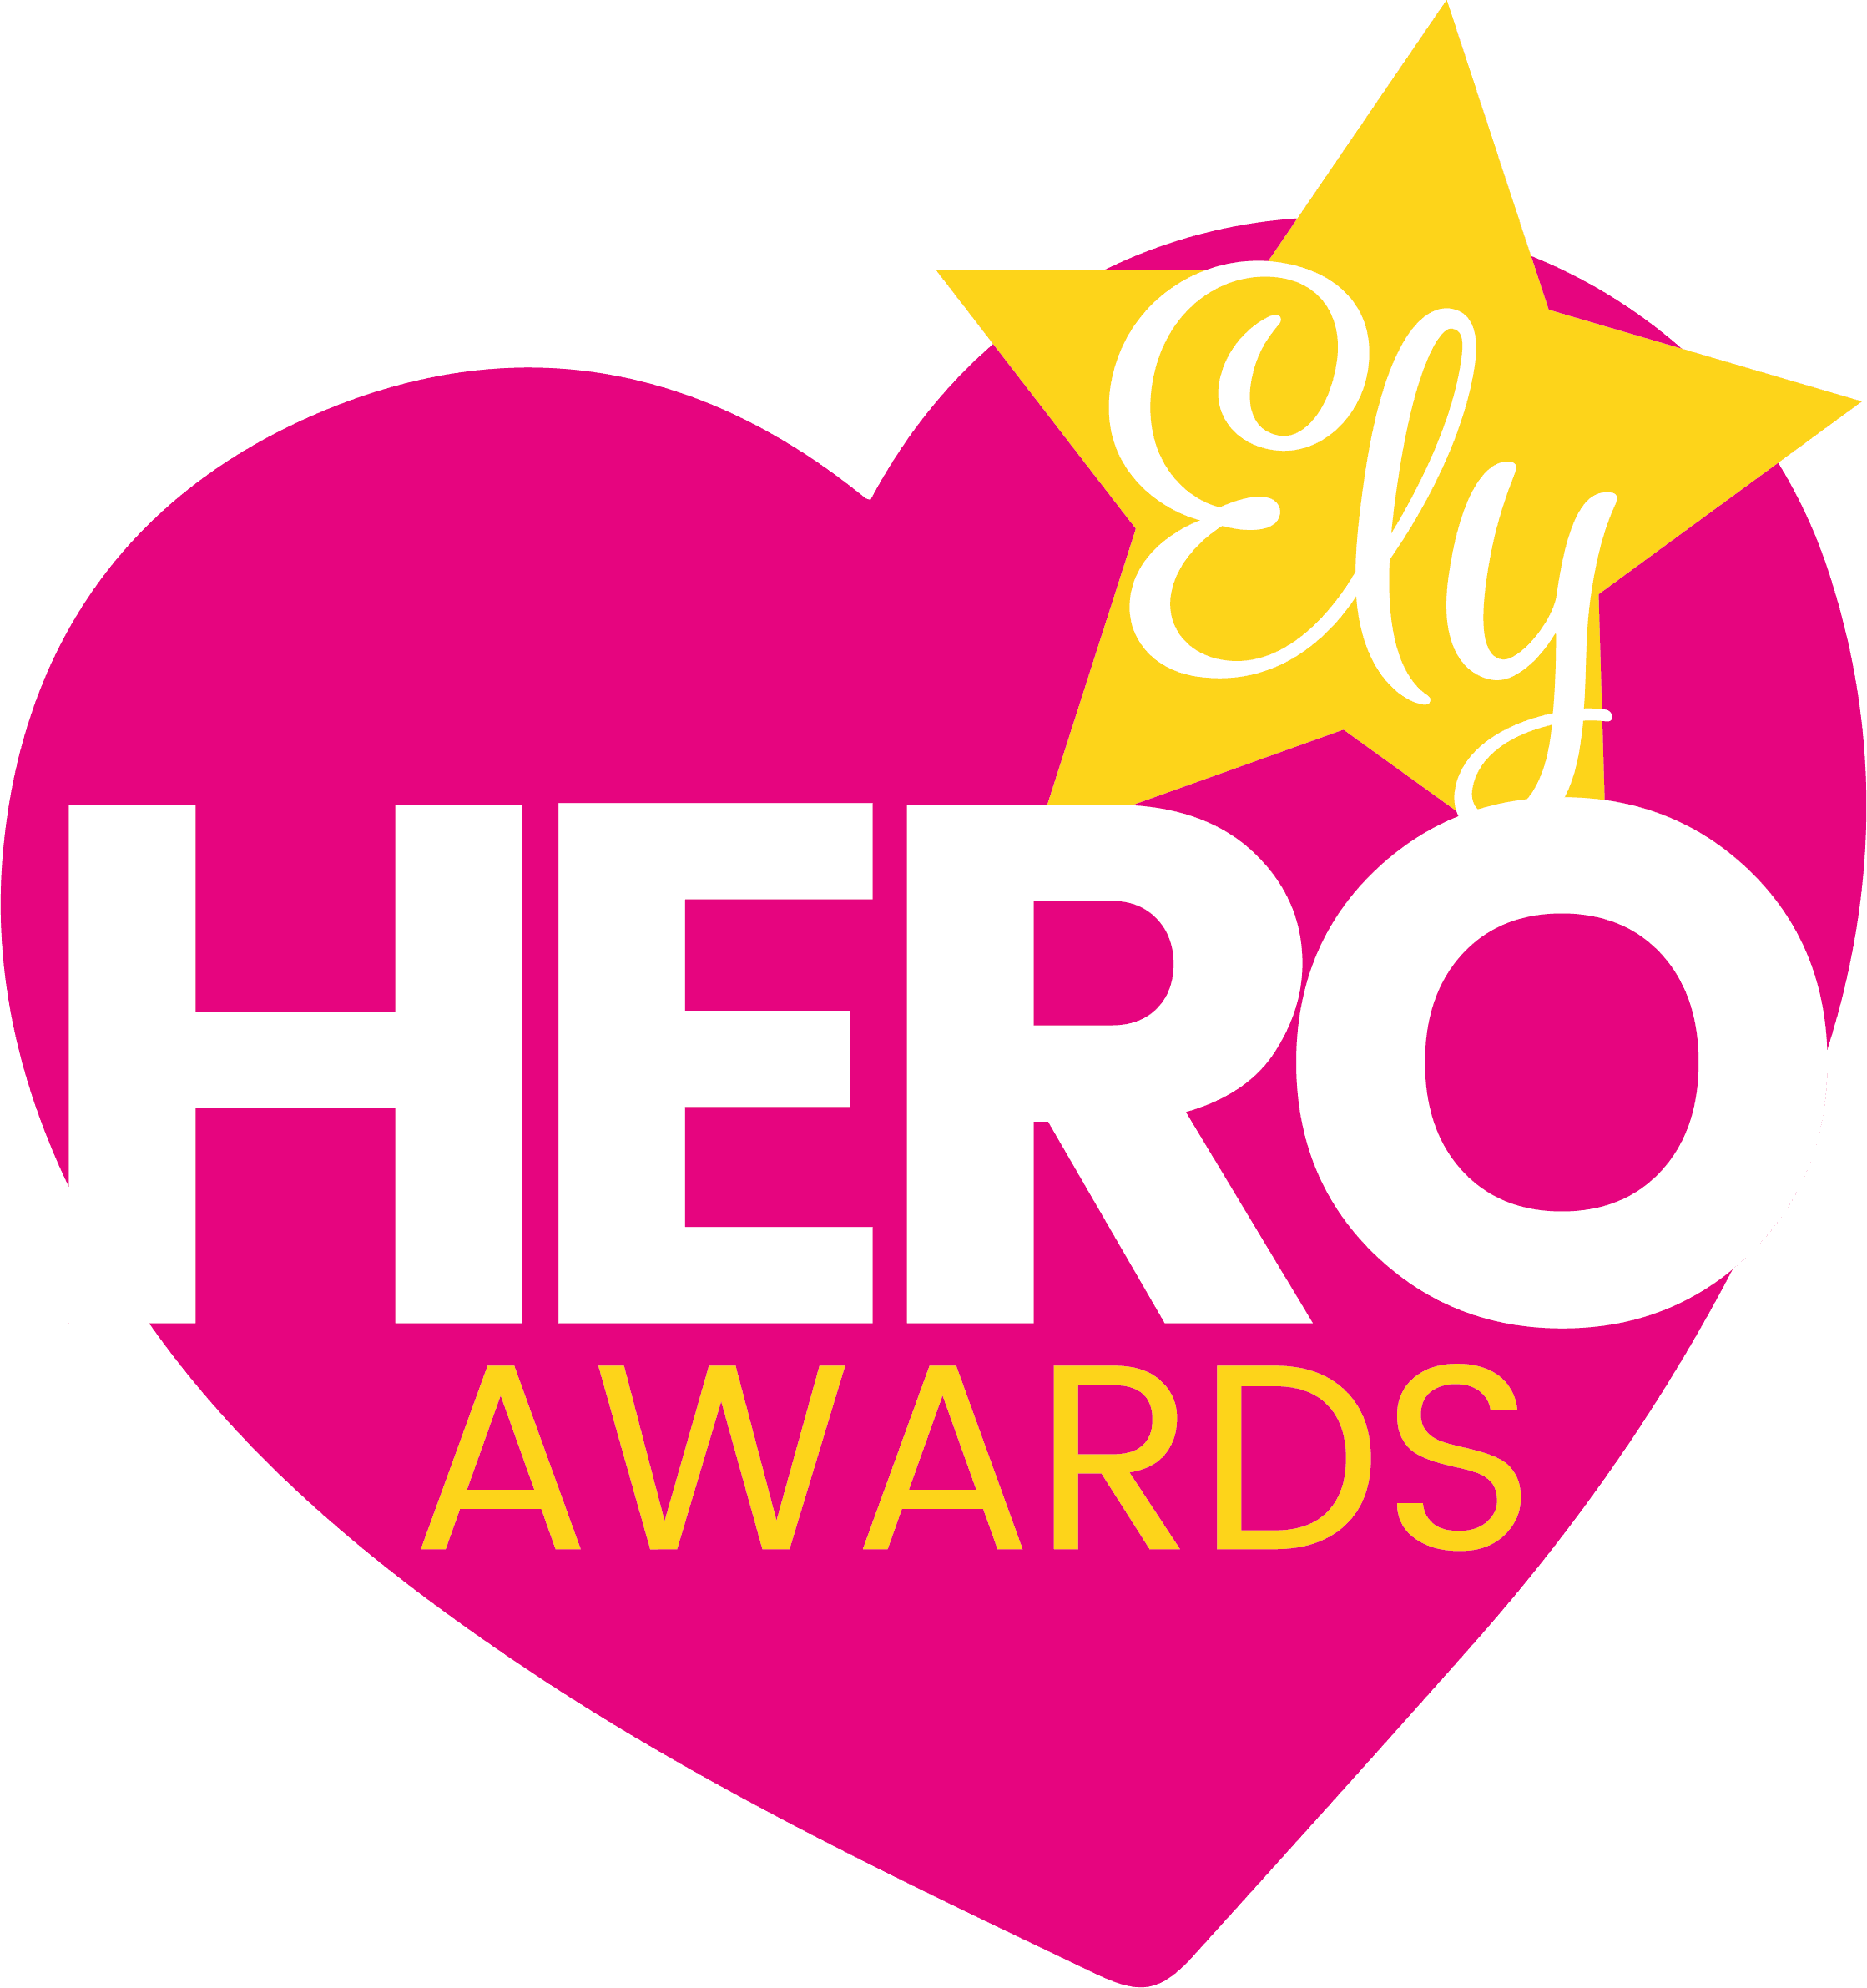 Ely hero awards logo